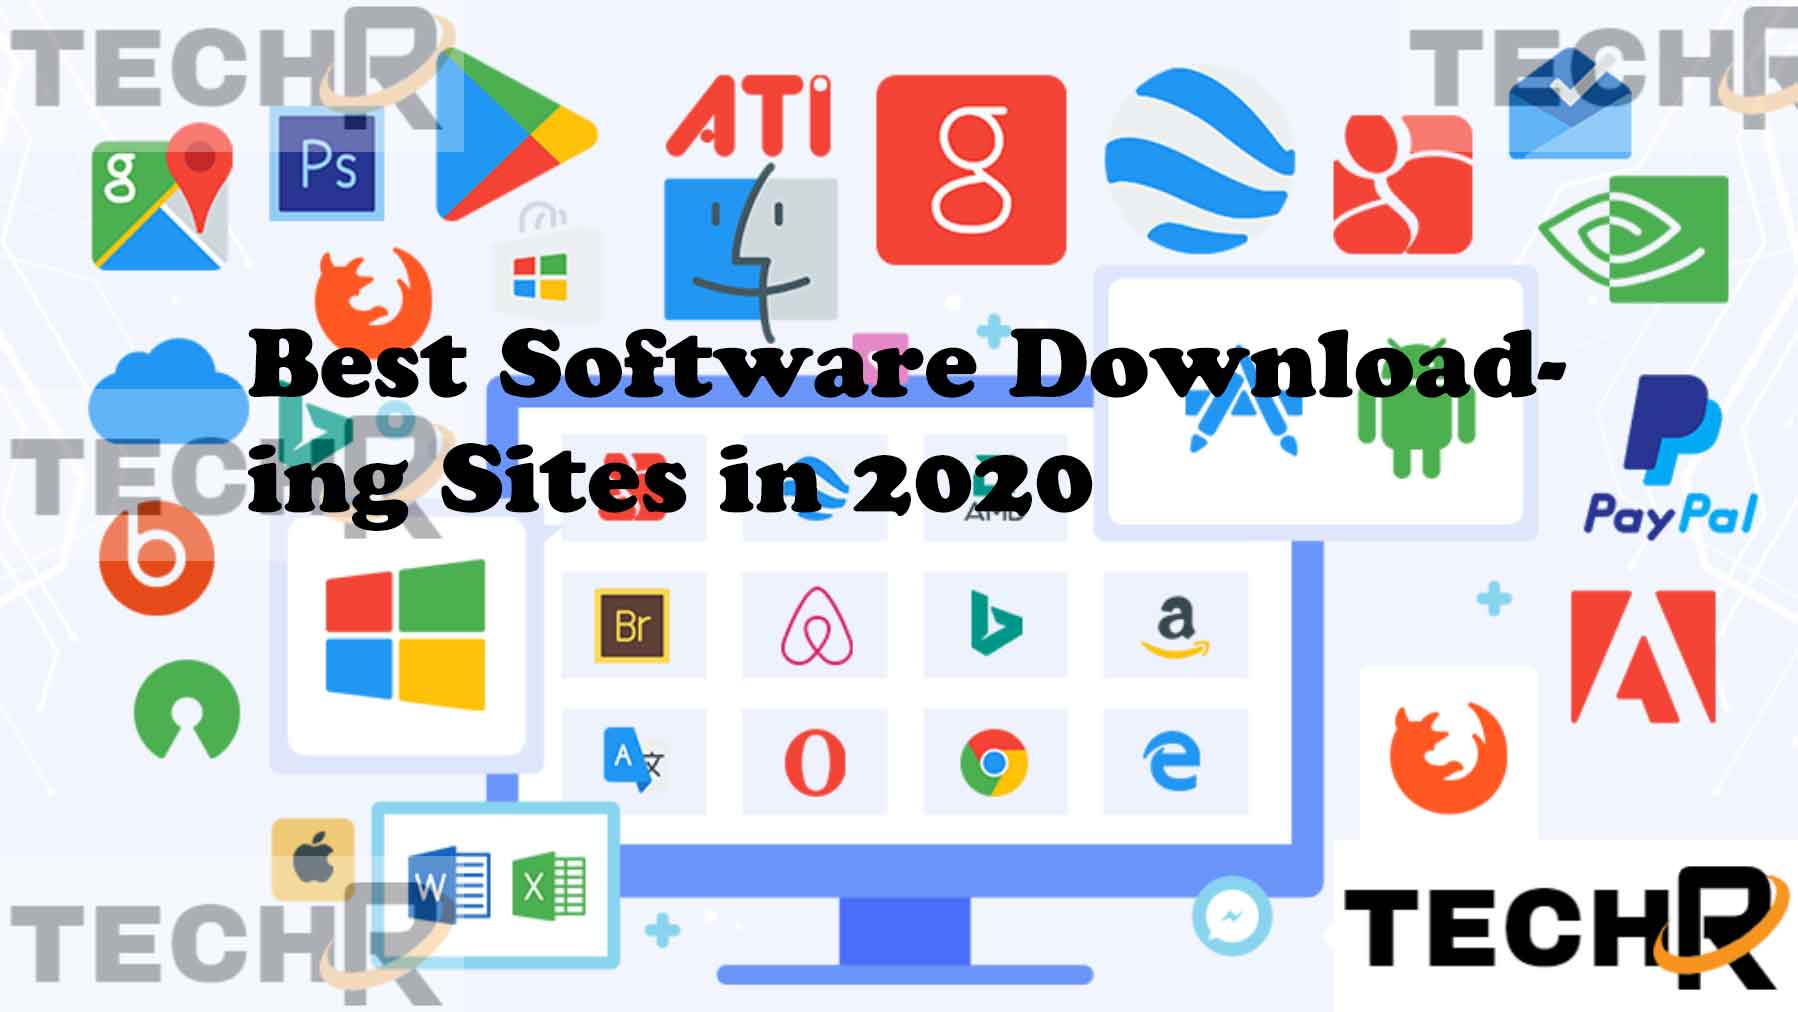 Free Computer Software Downloading Sites in 2020